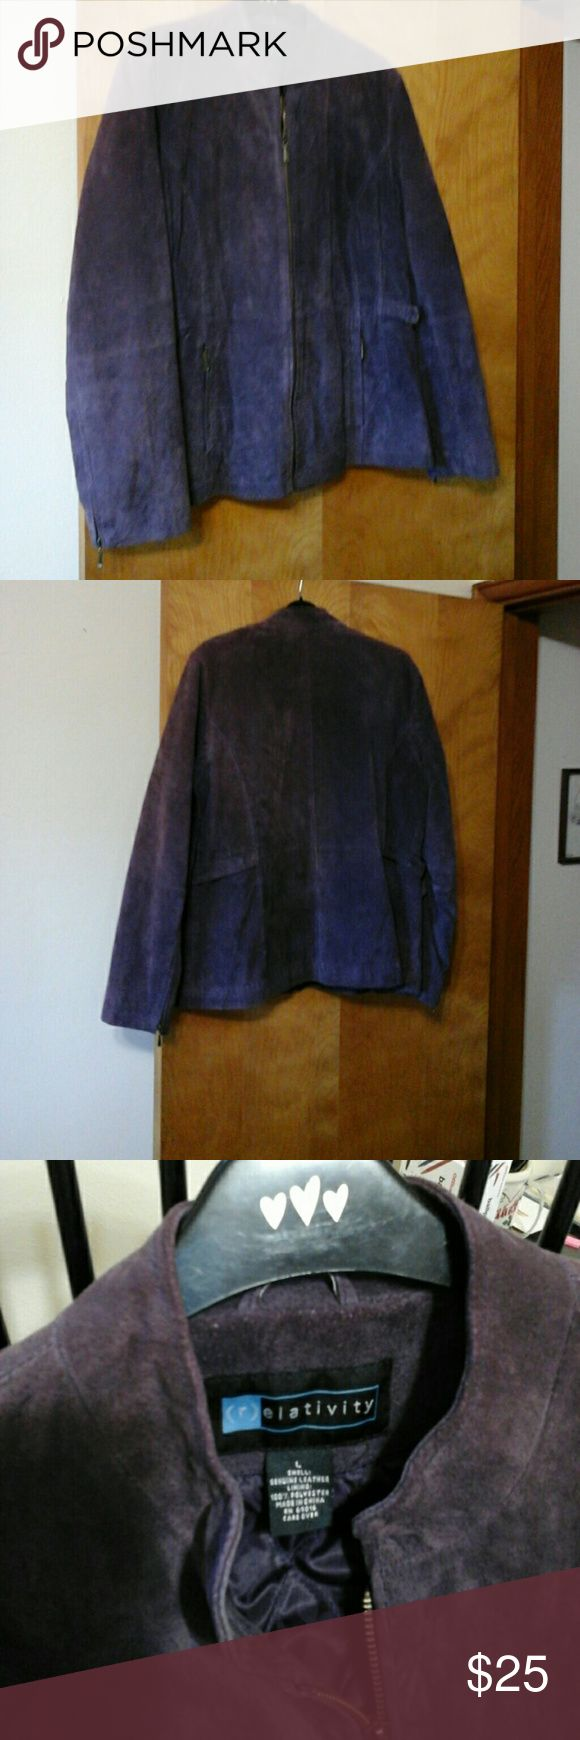 Suade leather purple jacket Real leather,  this classic purple jacket can be dressed up for a chic night look, or put with jeans for a Saturday football game.  Very versitile jacket, in great shape. Relativity Jackets & Coats